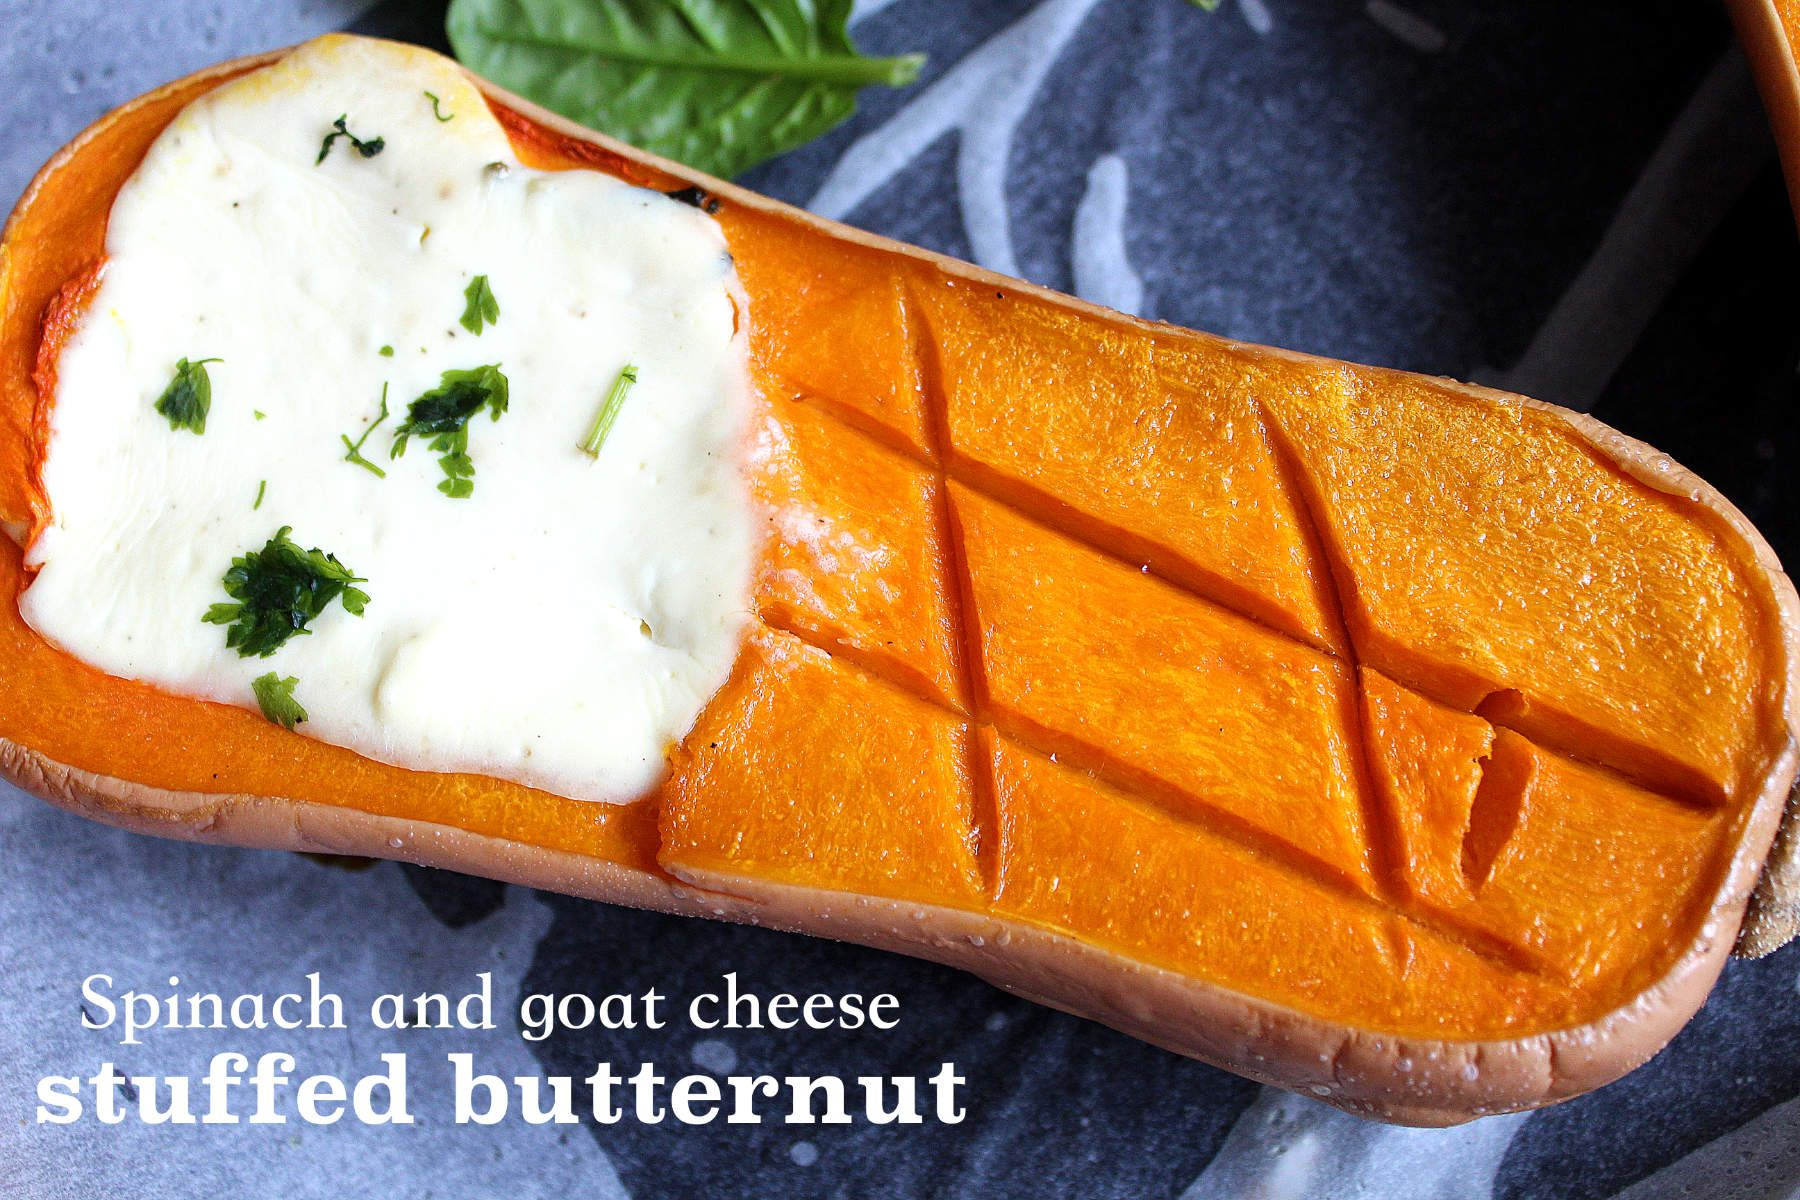 Spinach and goat cheese stuffed butternut squash